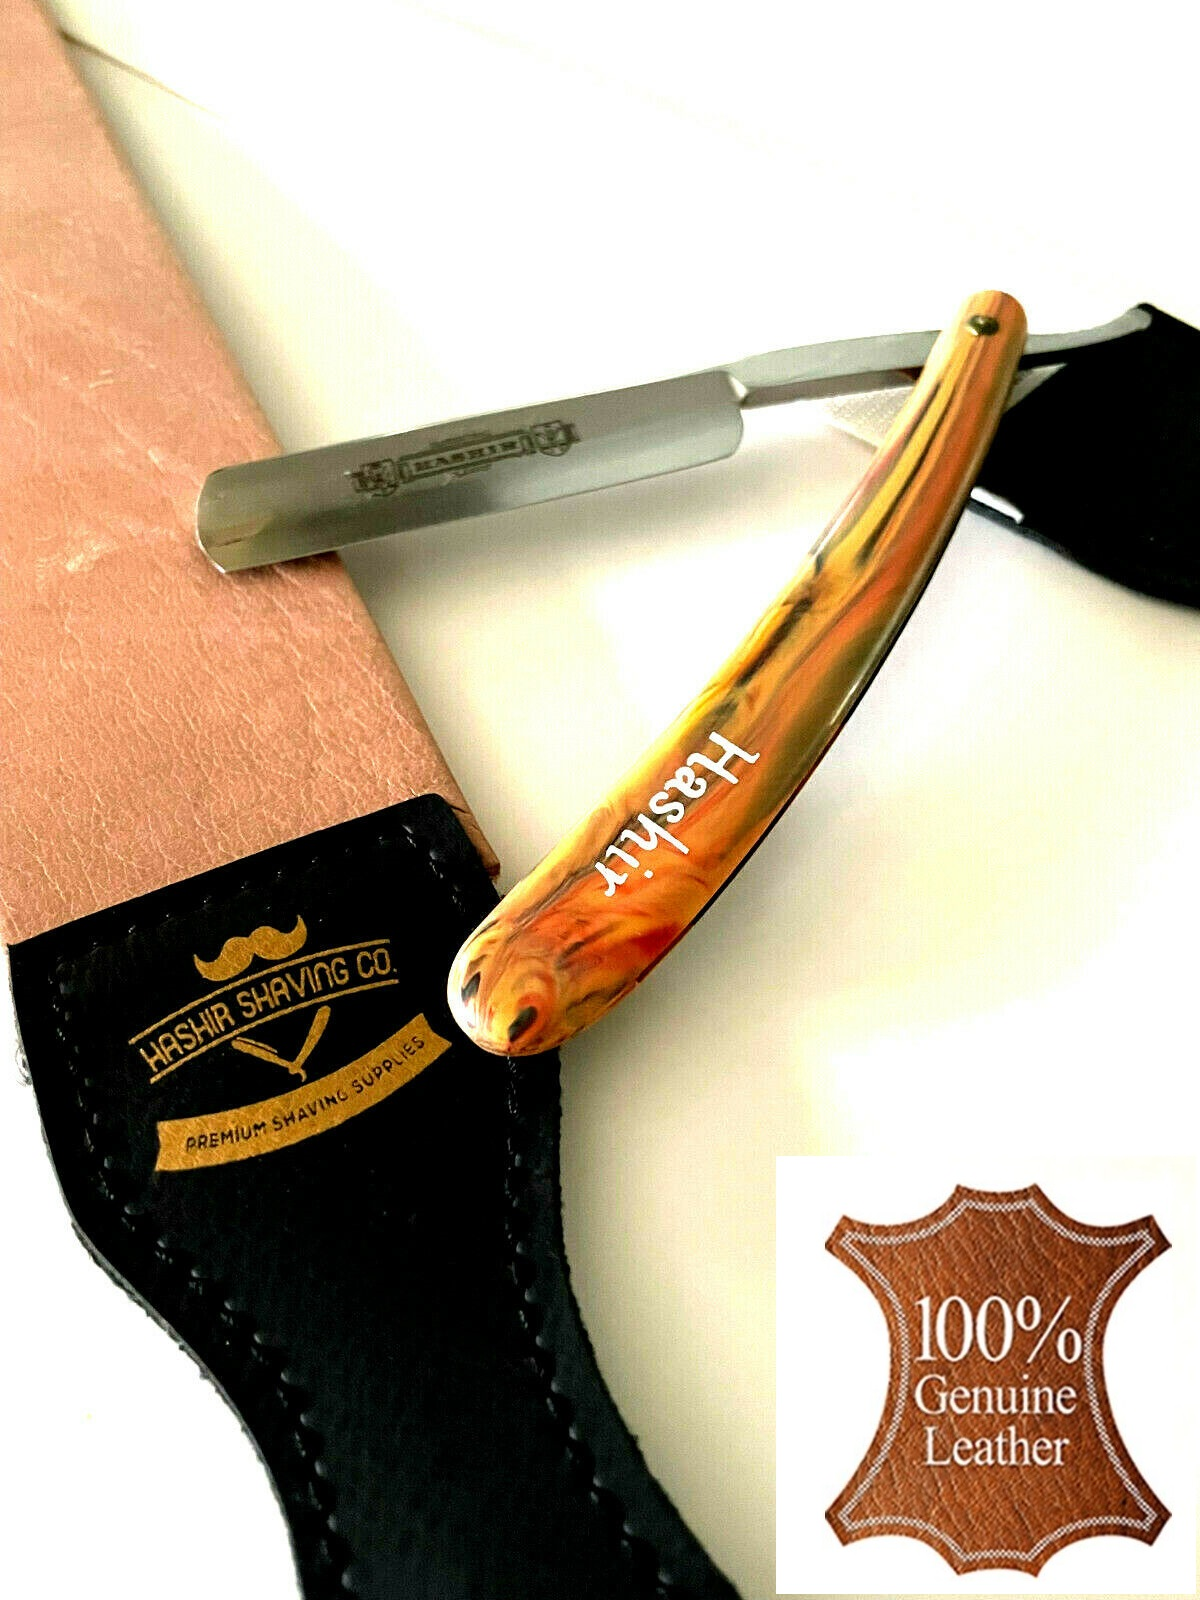 Leather Shaping Strop